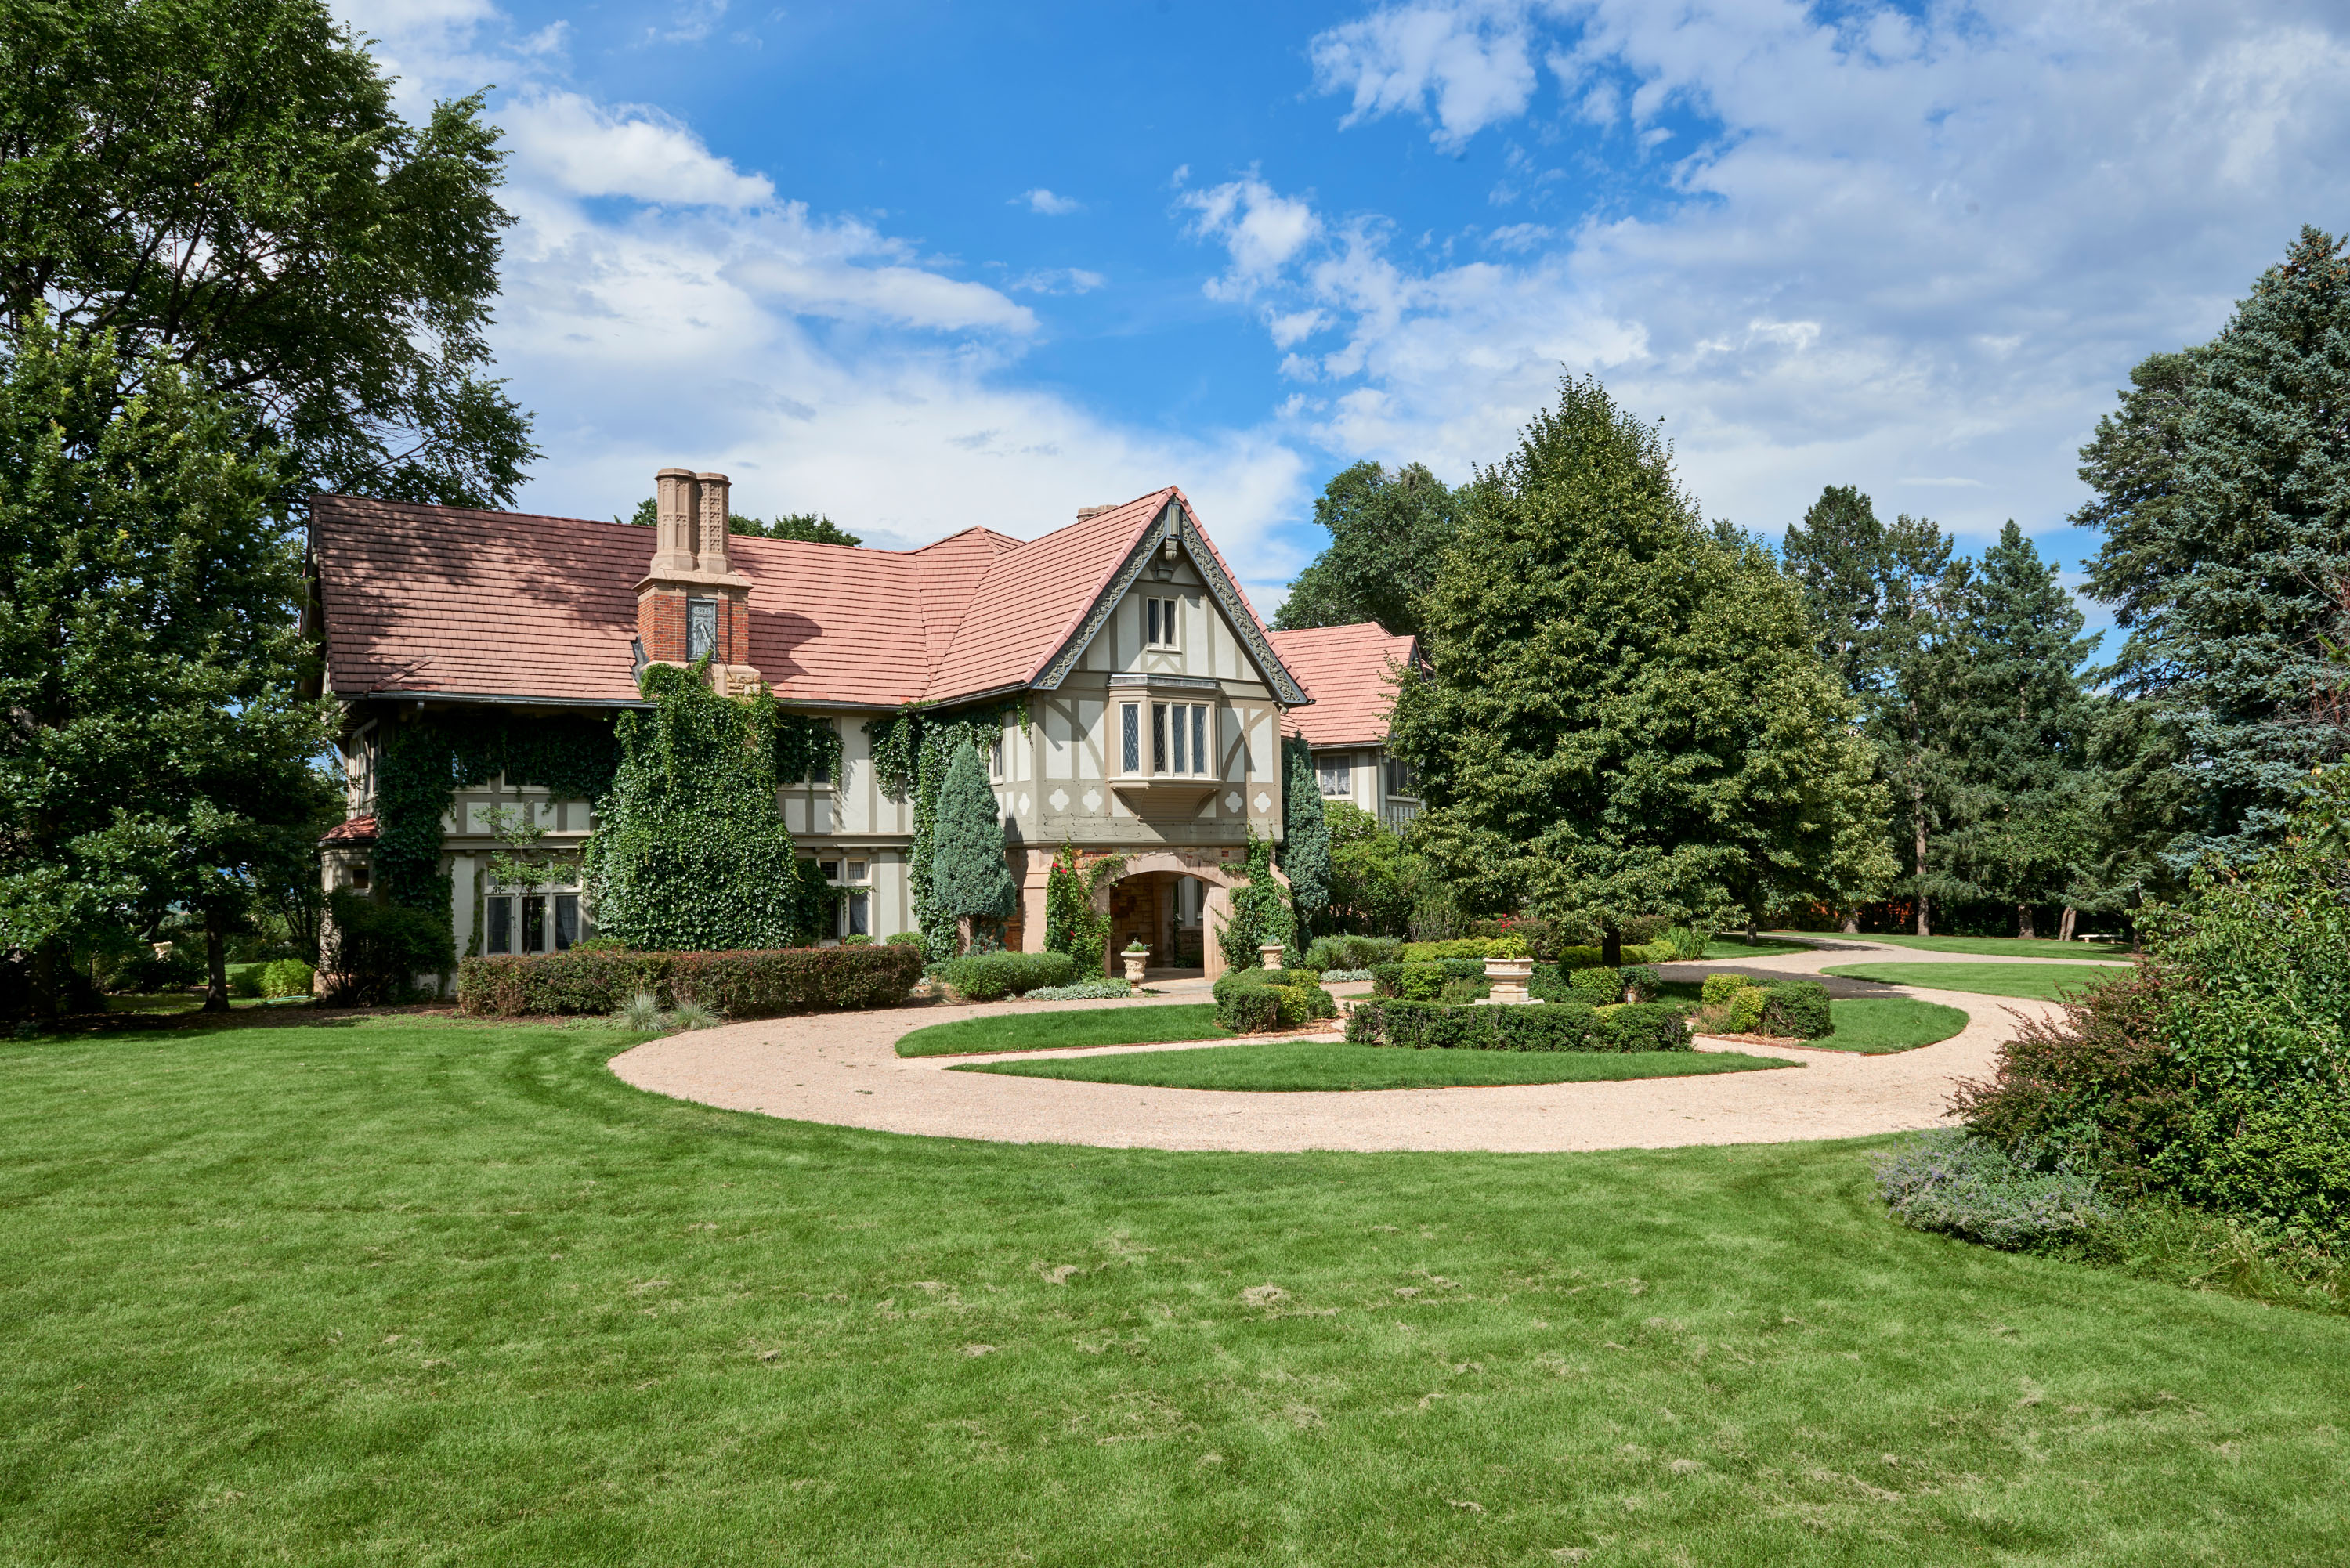 BROADMOOR PROPERTY AUCTION // OCT 20 // NO RESERVE